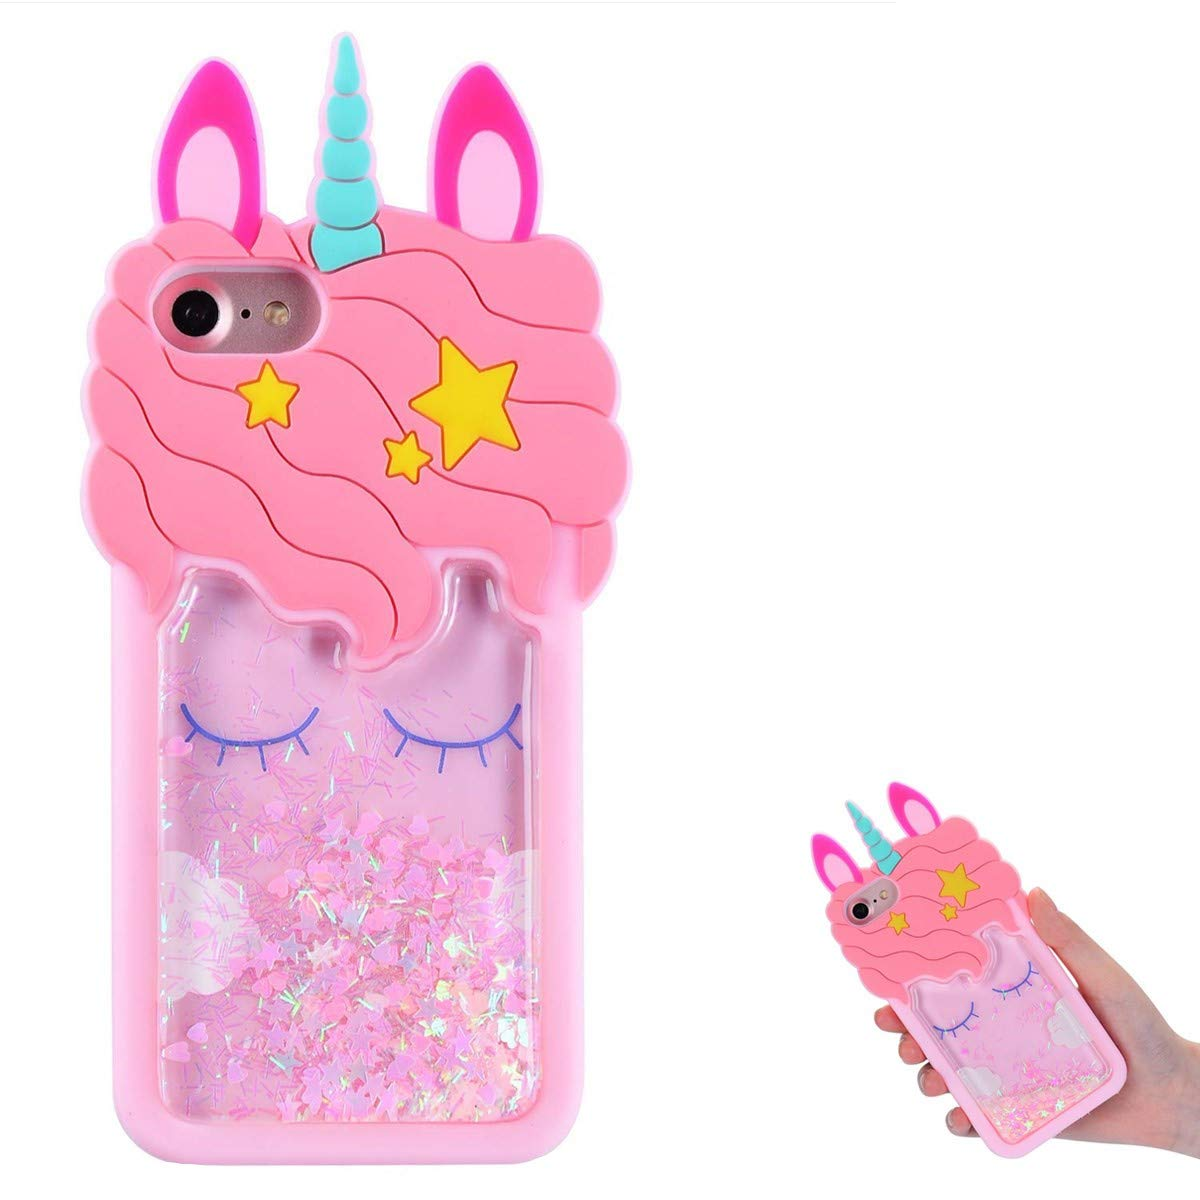 """TopSZ Quicksand Unicorn Bling Case for iPhone 8/7/6/6S 4.7""""Cute Silicone Cool 3D Cartoon Kawaii Animal Cover,Shockproof Soft Skin for iPhone8,Funny Unique Character Cases for Kids Girls Teens(iPhone8)"""